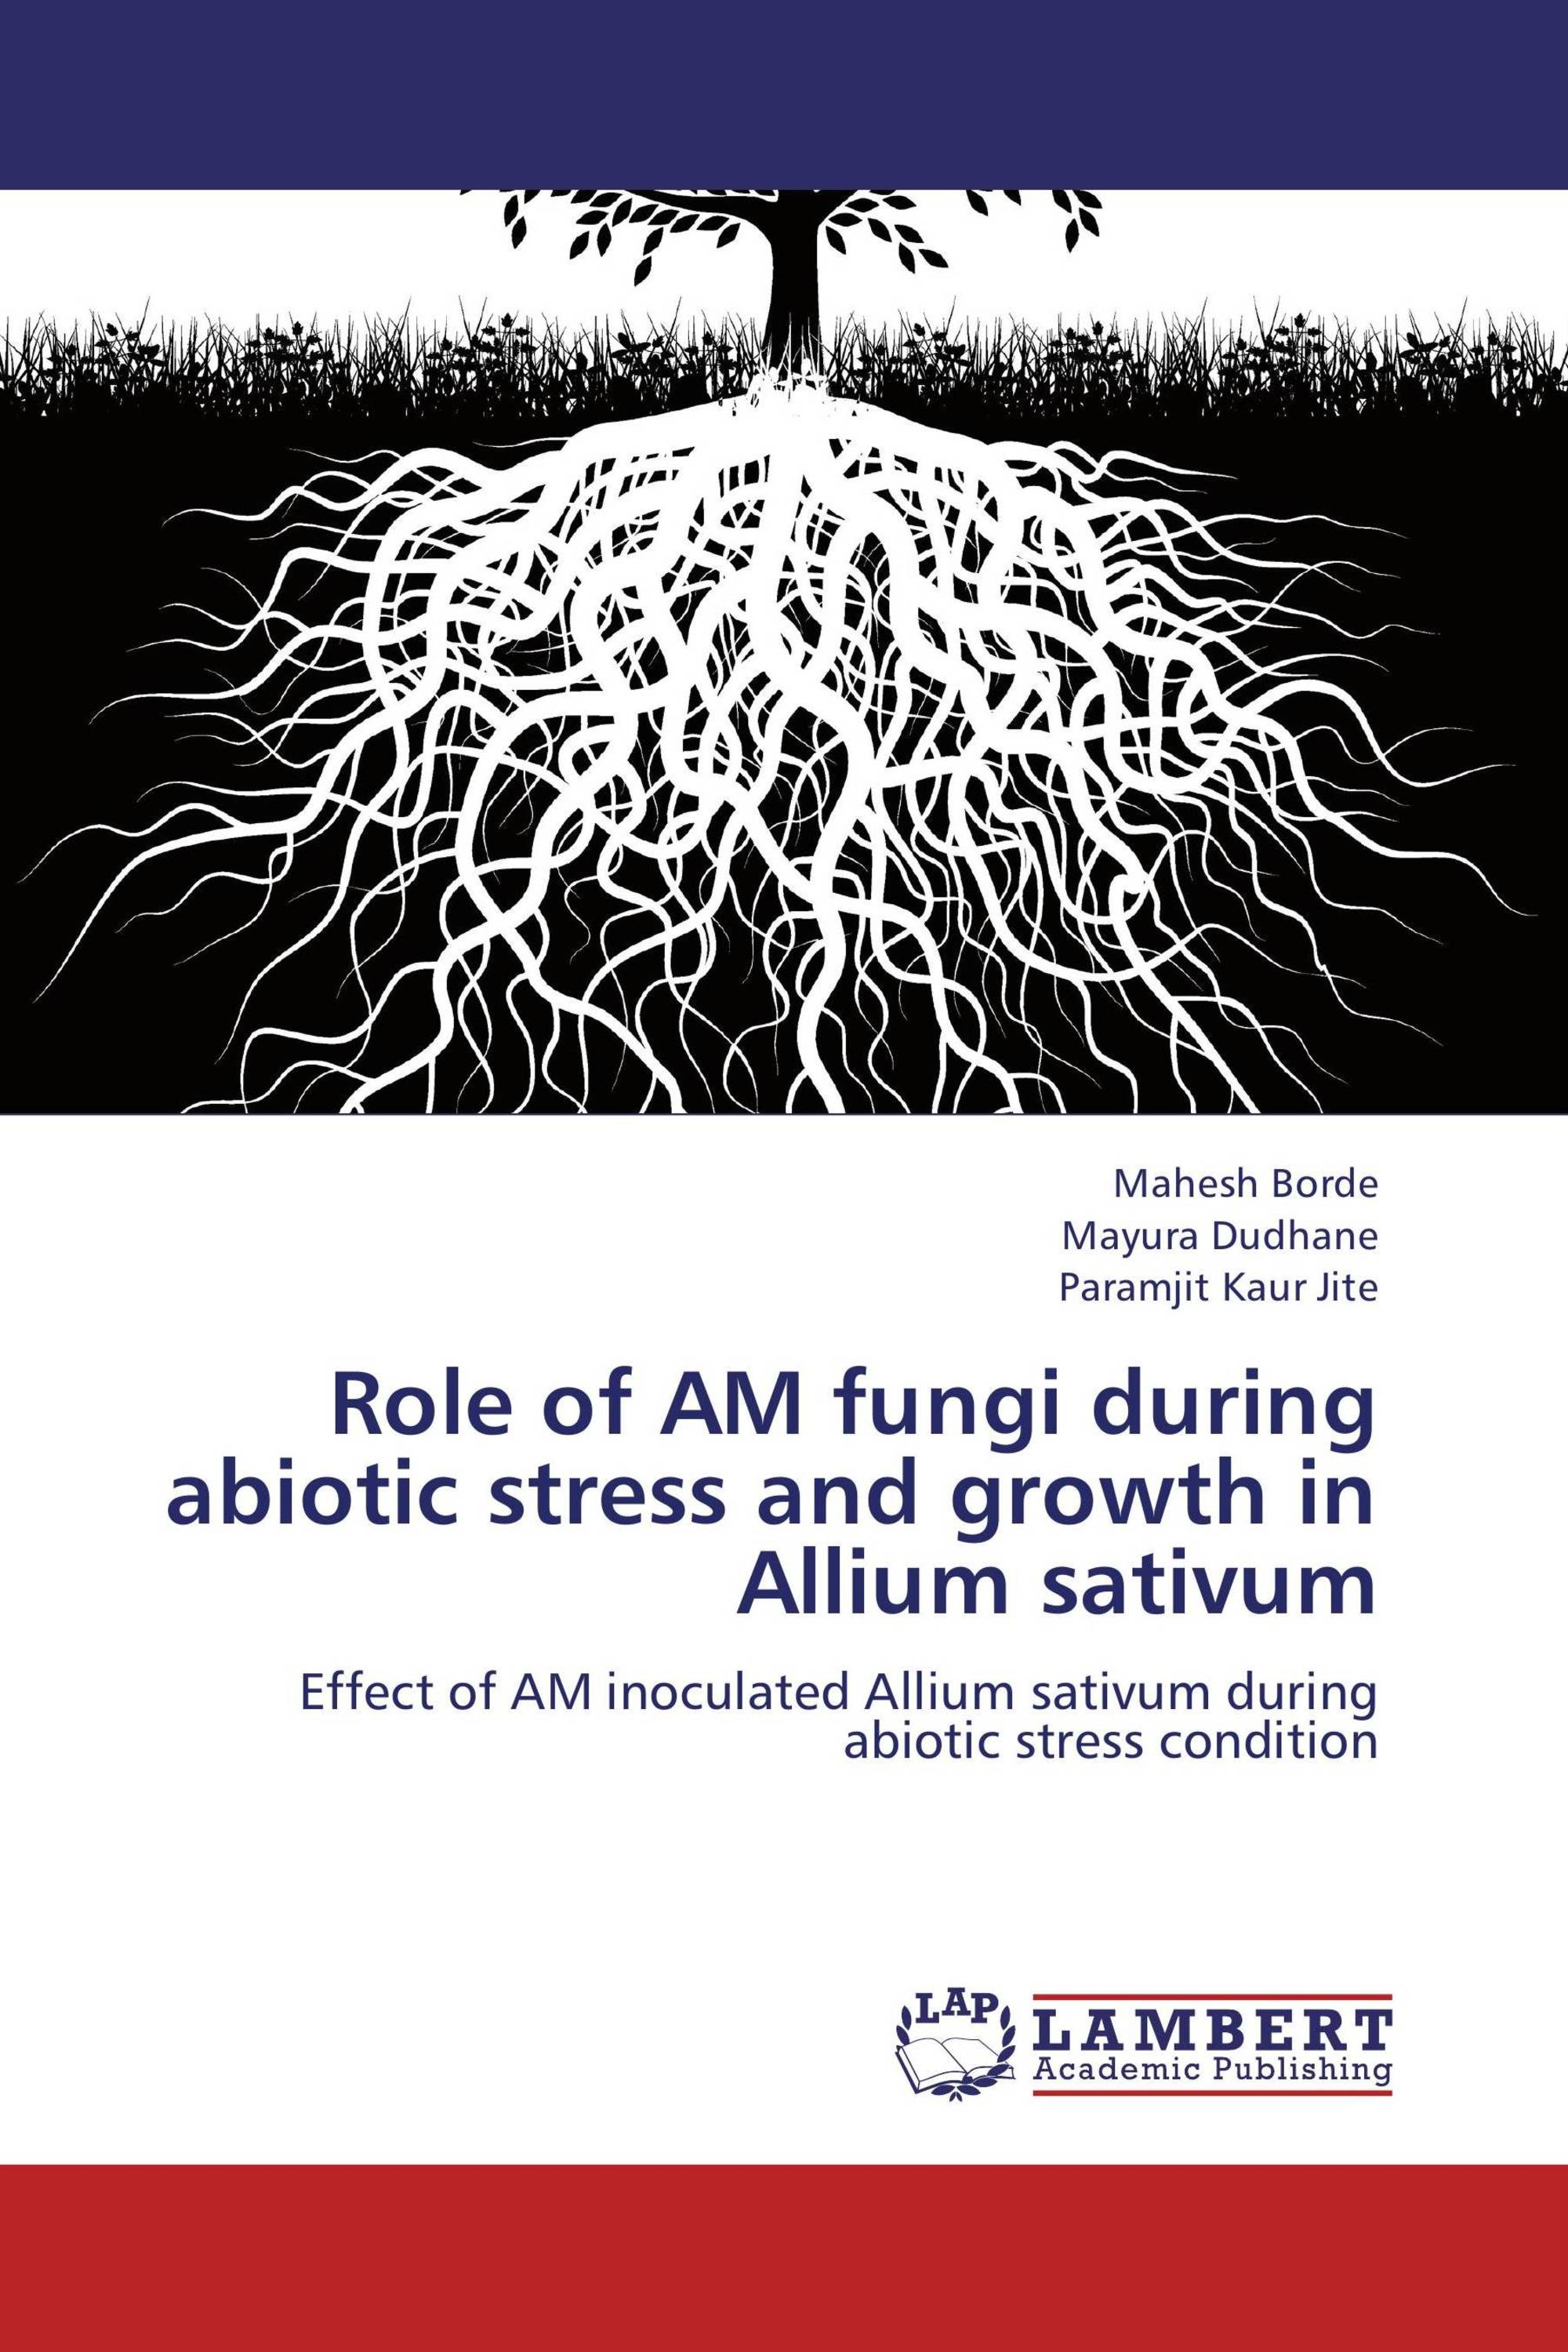 Role of AM fungi during abiotic stress and growth in Allium sativum